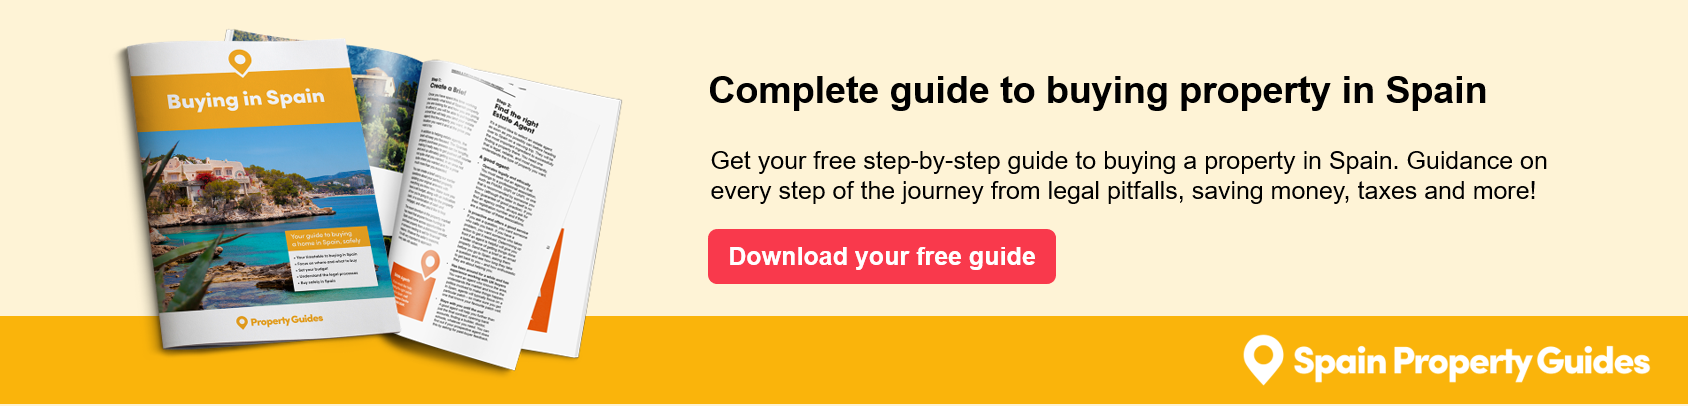 Download your free guide today